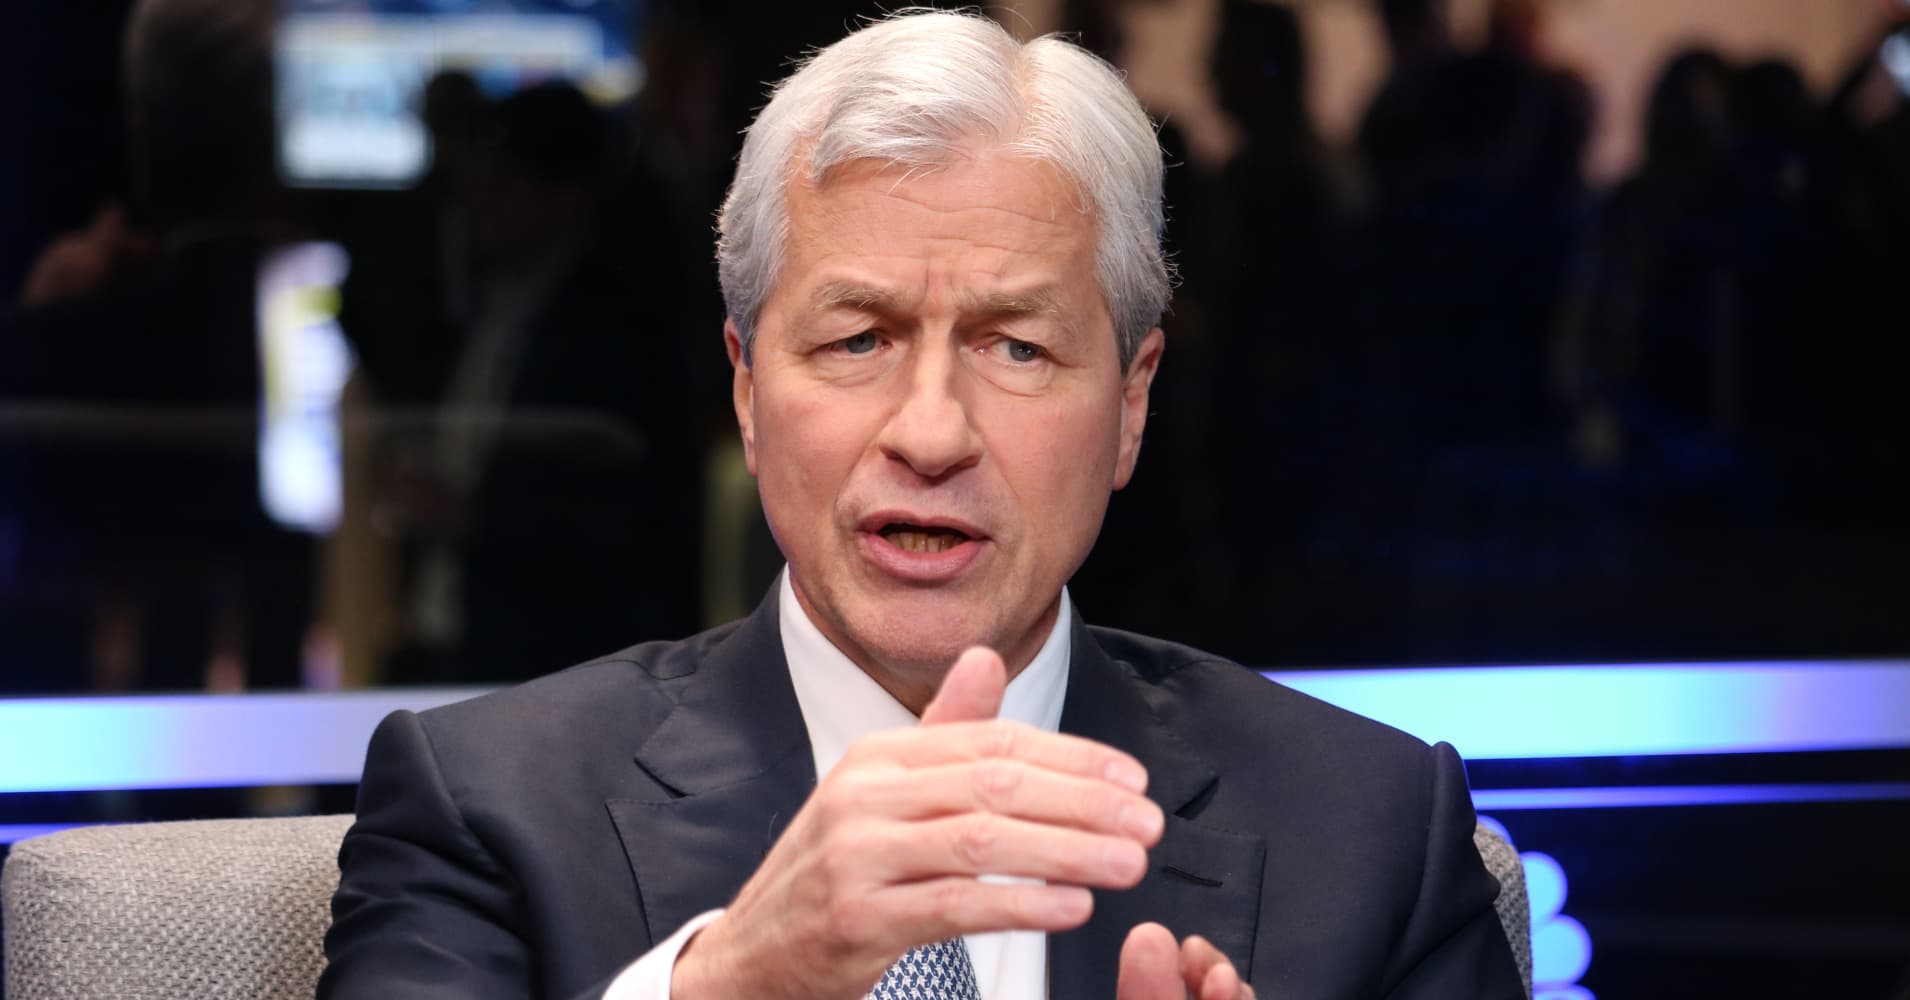 Jamie Dimon says the stock market overreacted, no recession ahead